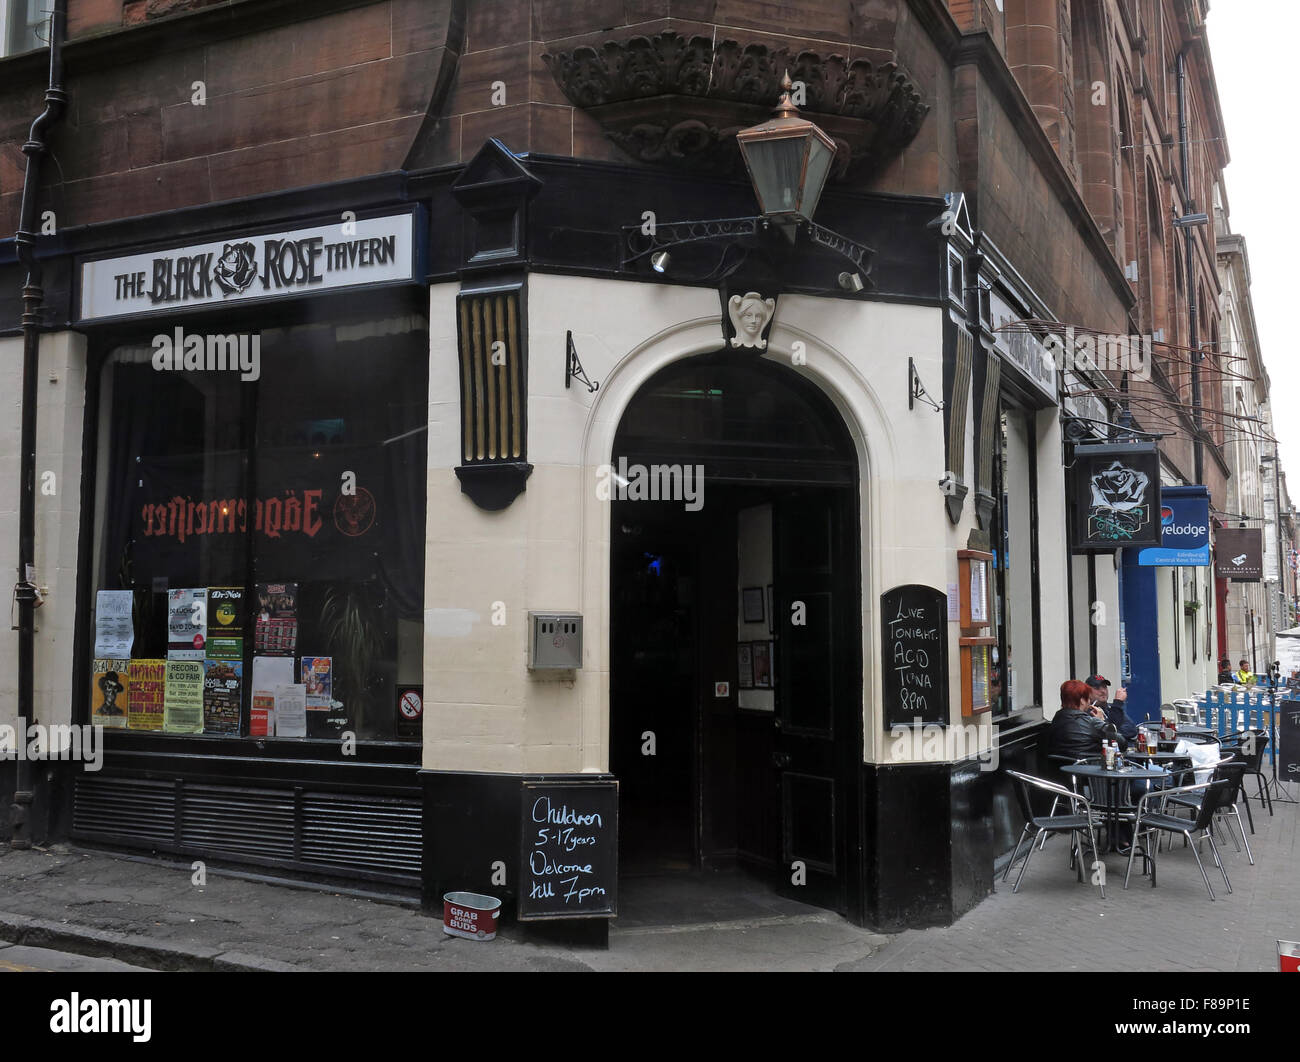 Black Rose Tavern,Pub Rose St,Edinburgh City Centre,Scotland,UK - Stock Image